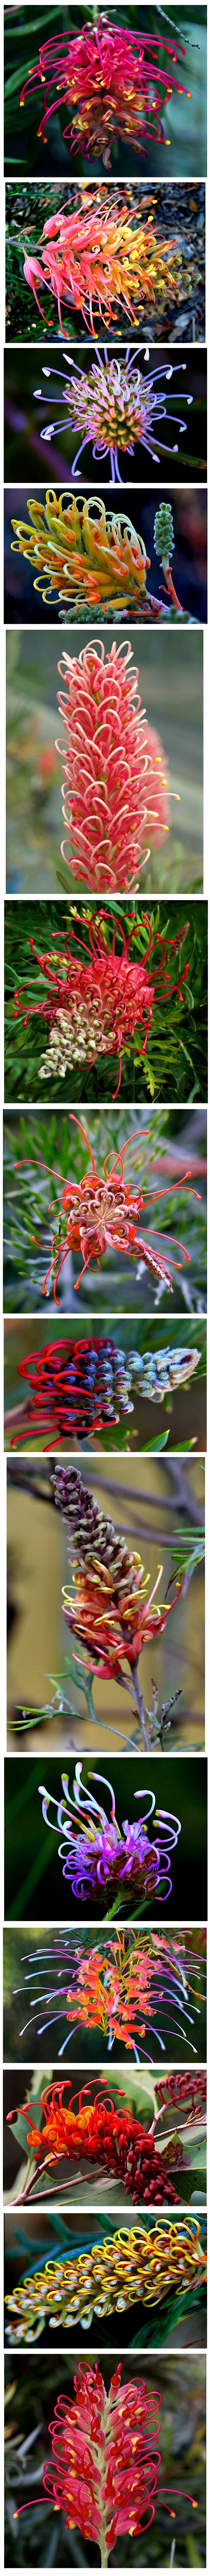 The rainbow of Grevillea